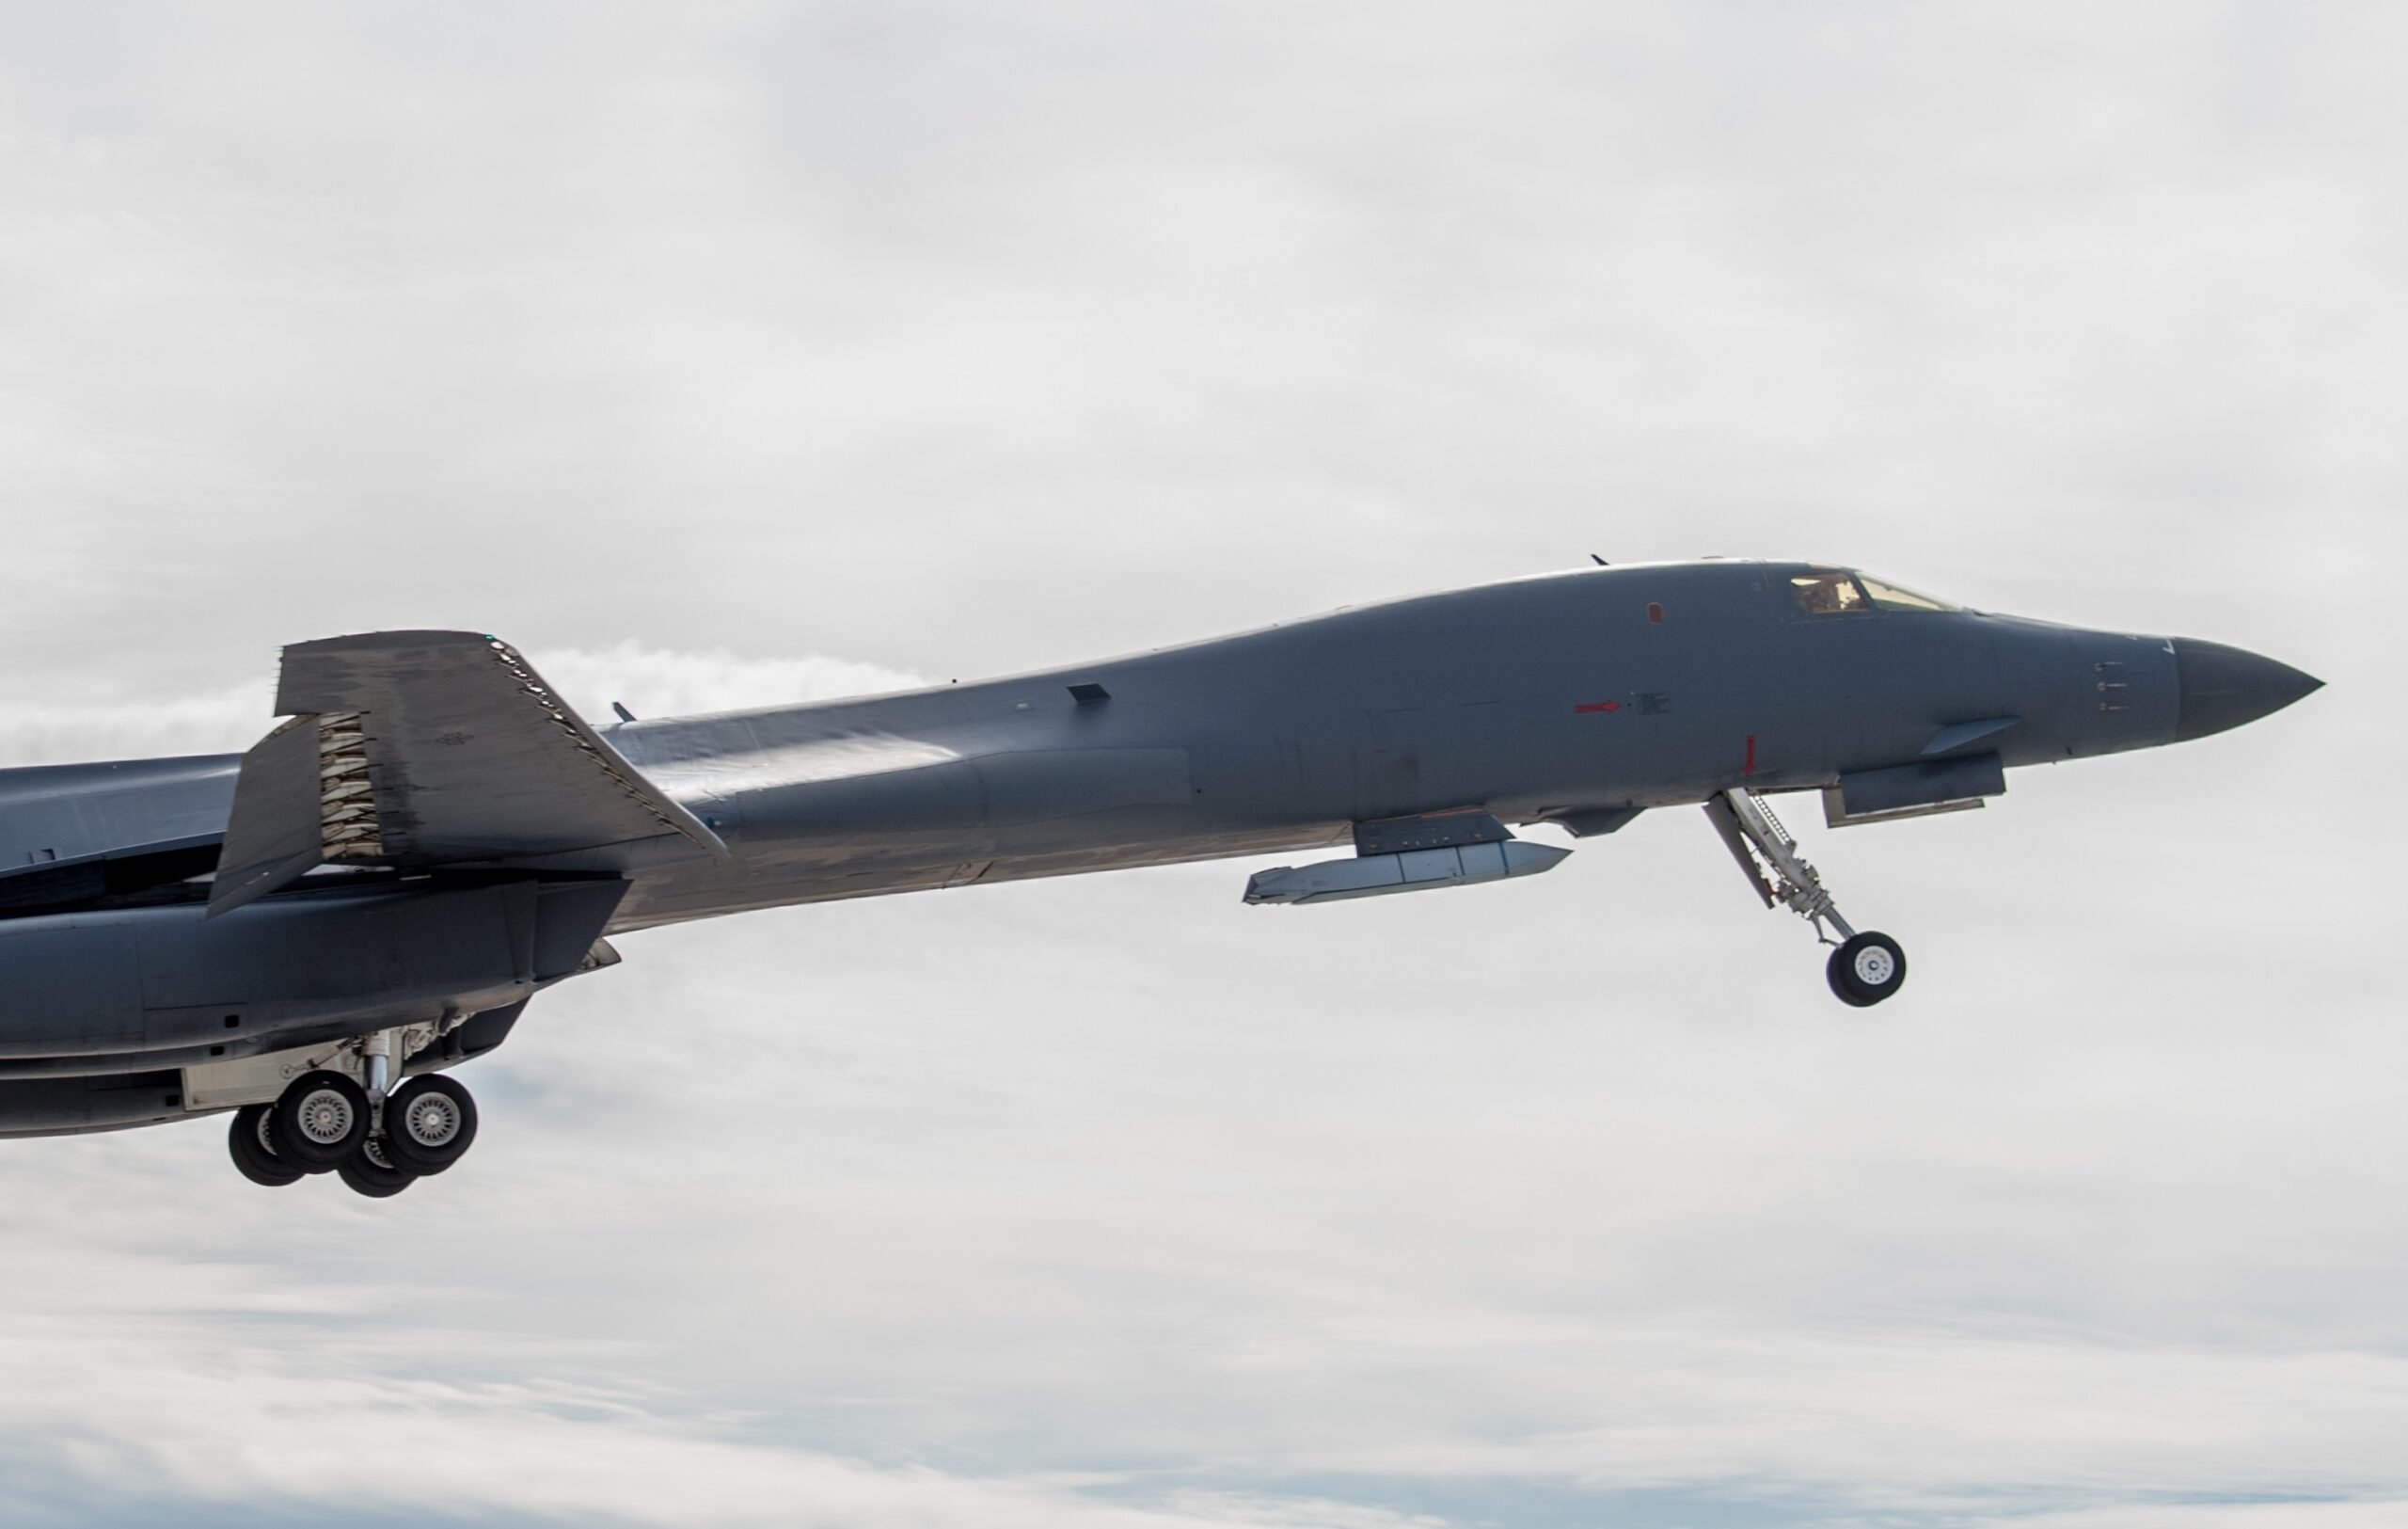 U.S. Air Force shows B-1B's external weapons carriage capabilities